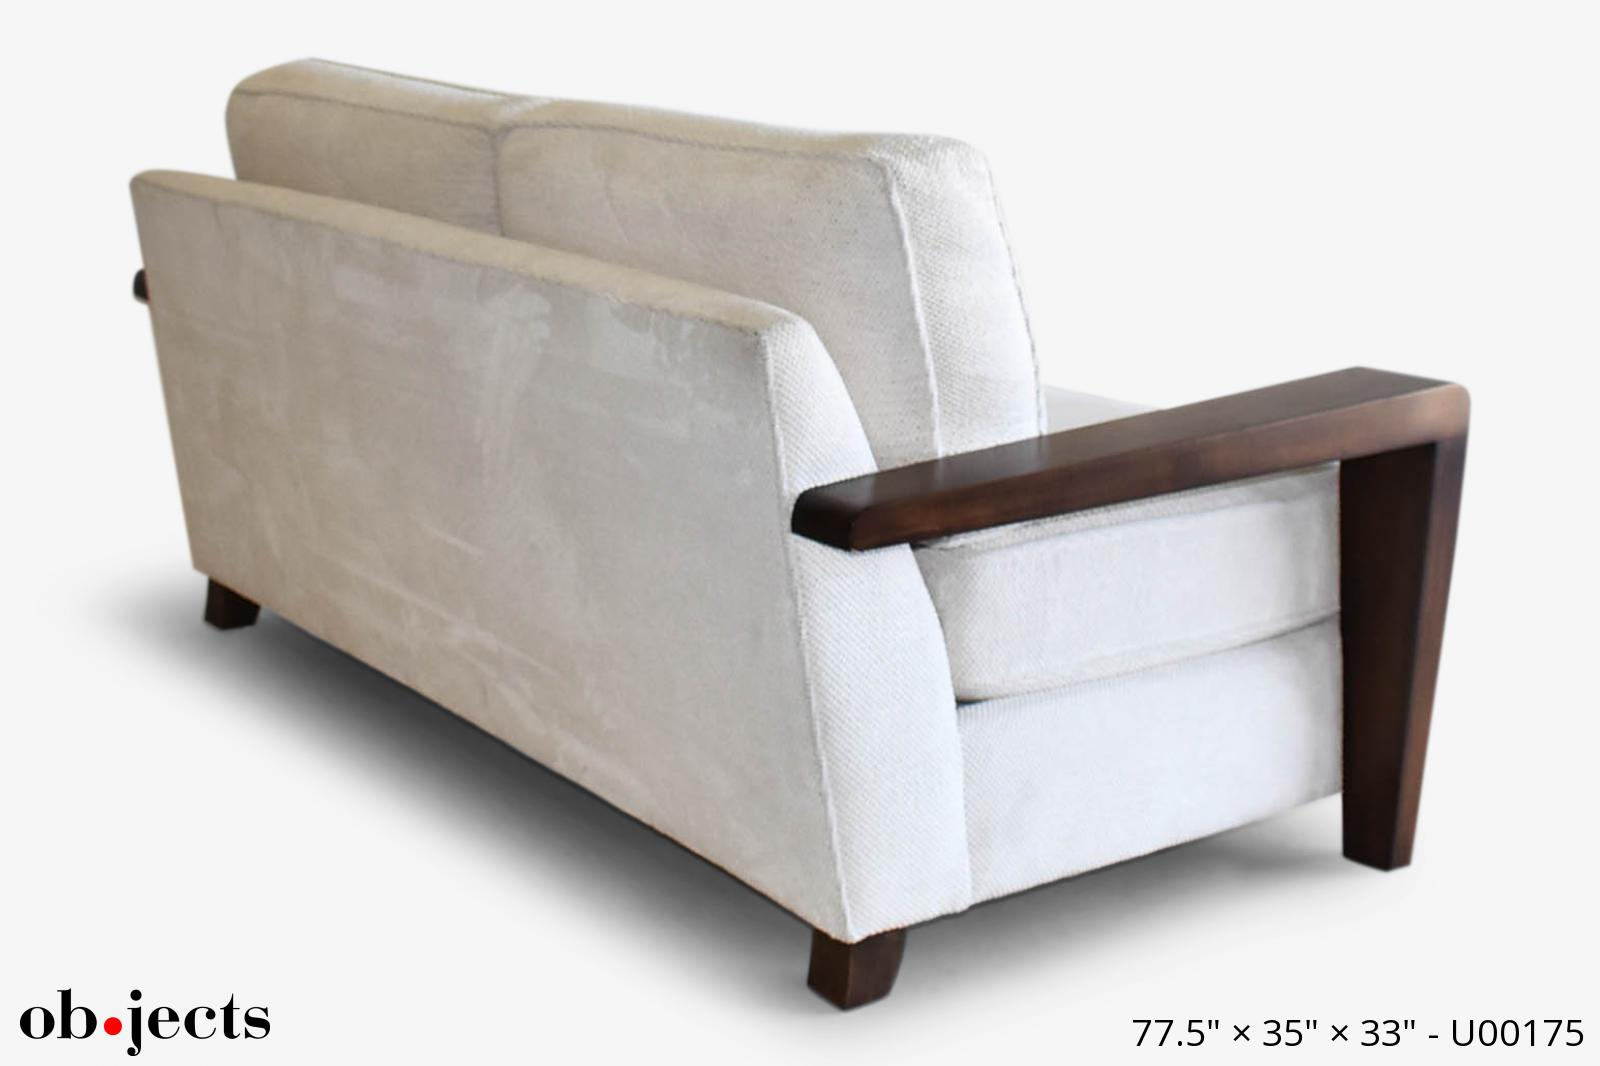 Miraculous Sofa Off White Boucle W Walnut Arms Objects Gmtry Best Dining Table And Chair Ideas Images Gmtryco